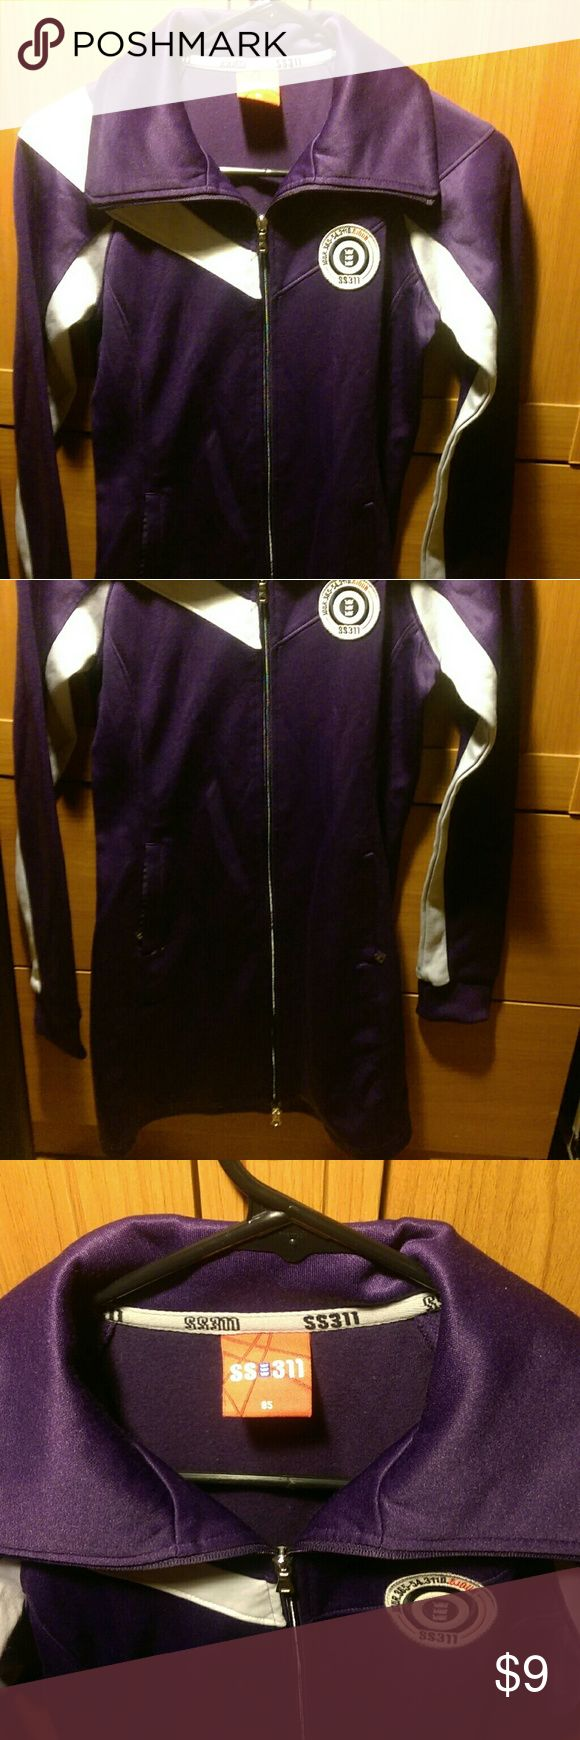 Sixjour Korean sports wear purple tennis 1 pc sz 4 Sixjour is a korean fashion sports apparel brand comparable to lululemon. It's sold in high end department stores like lotte which is the equivalent of saks fifth. 85cm breast circumference, and 155-165cm. Worn about twice. In flawless condition. sixjour Dresses Long Sleeve